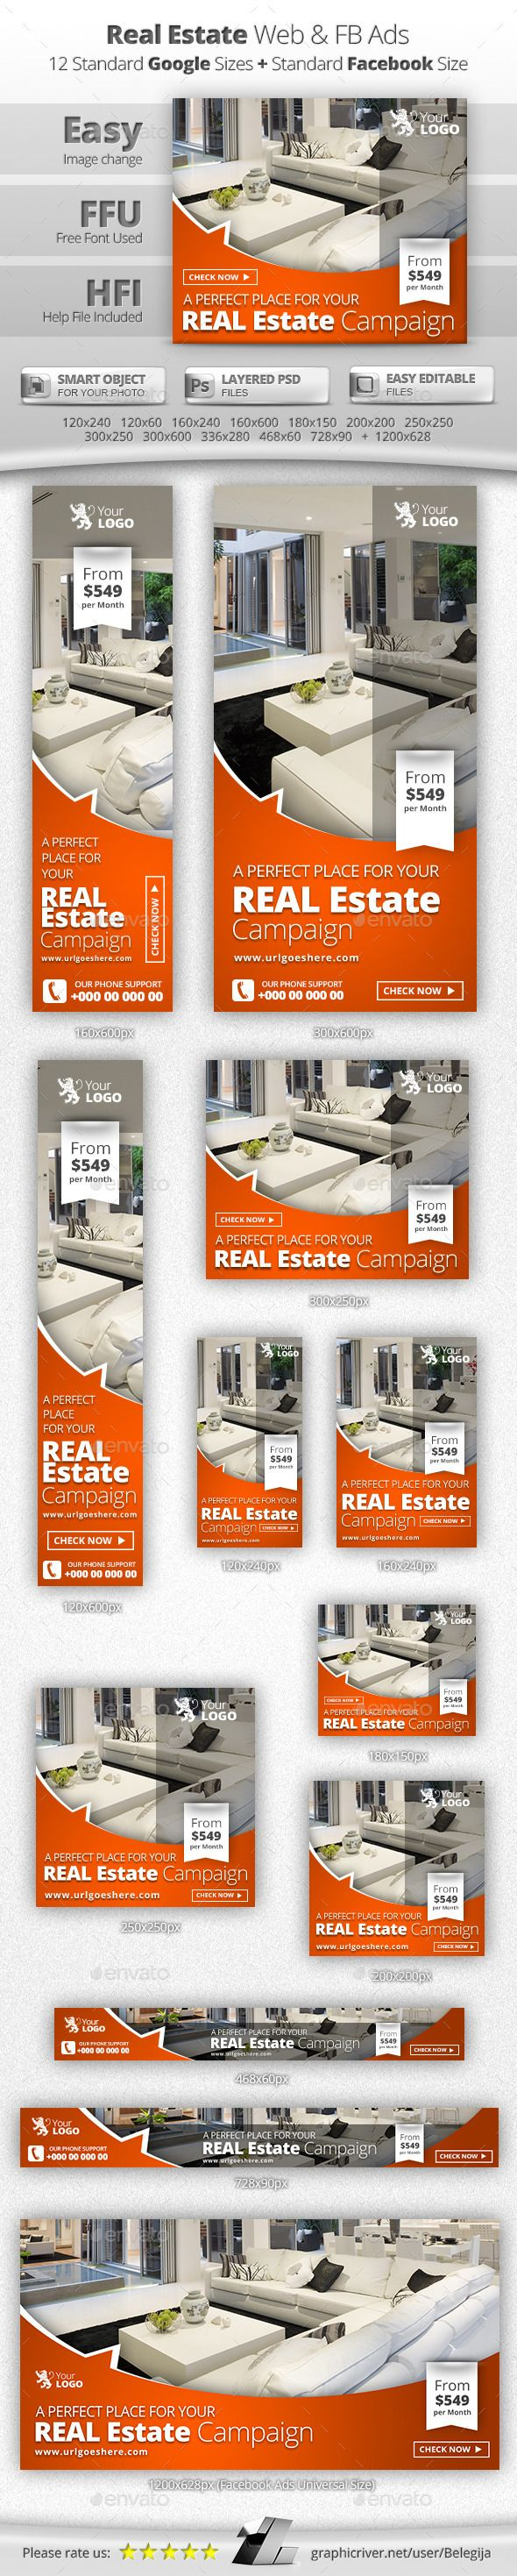 Real Estate Web & Facebook Banners Template #design Download: http://graphicriver.net/item/real-estate-web-facebook-banners/11624056?ref=ksioks